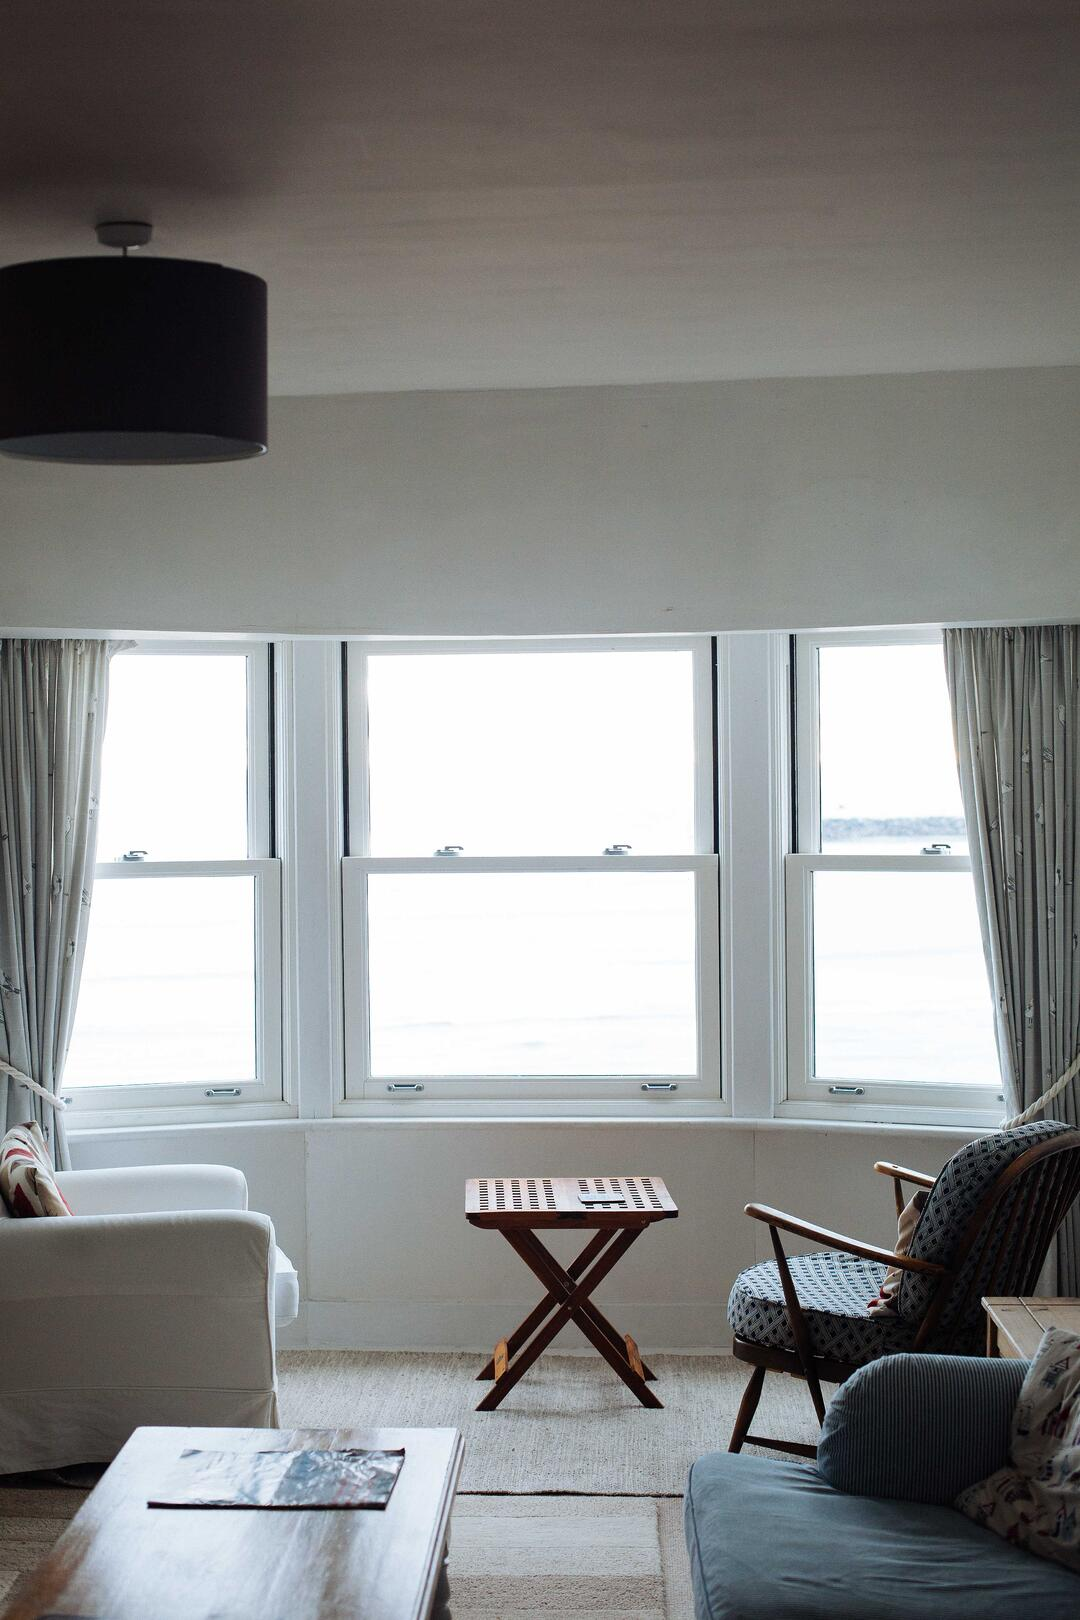 Canva - Two Chairs Facing Towards White Casement Window